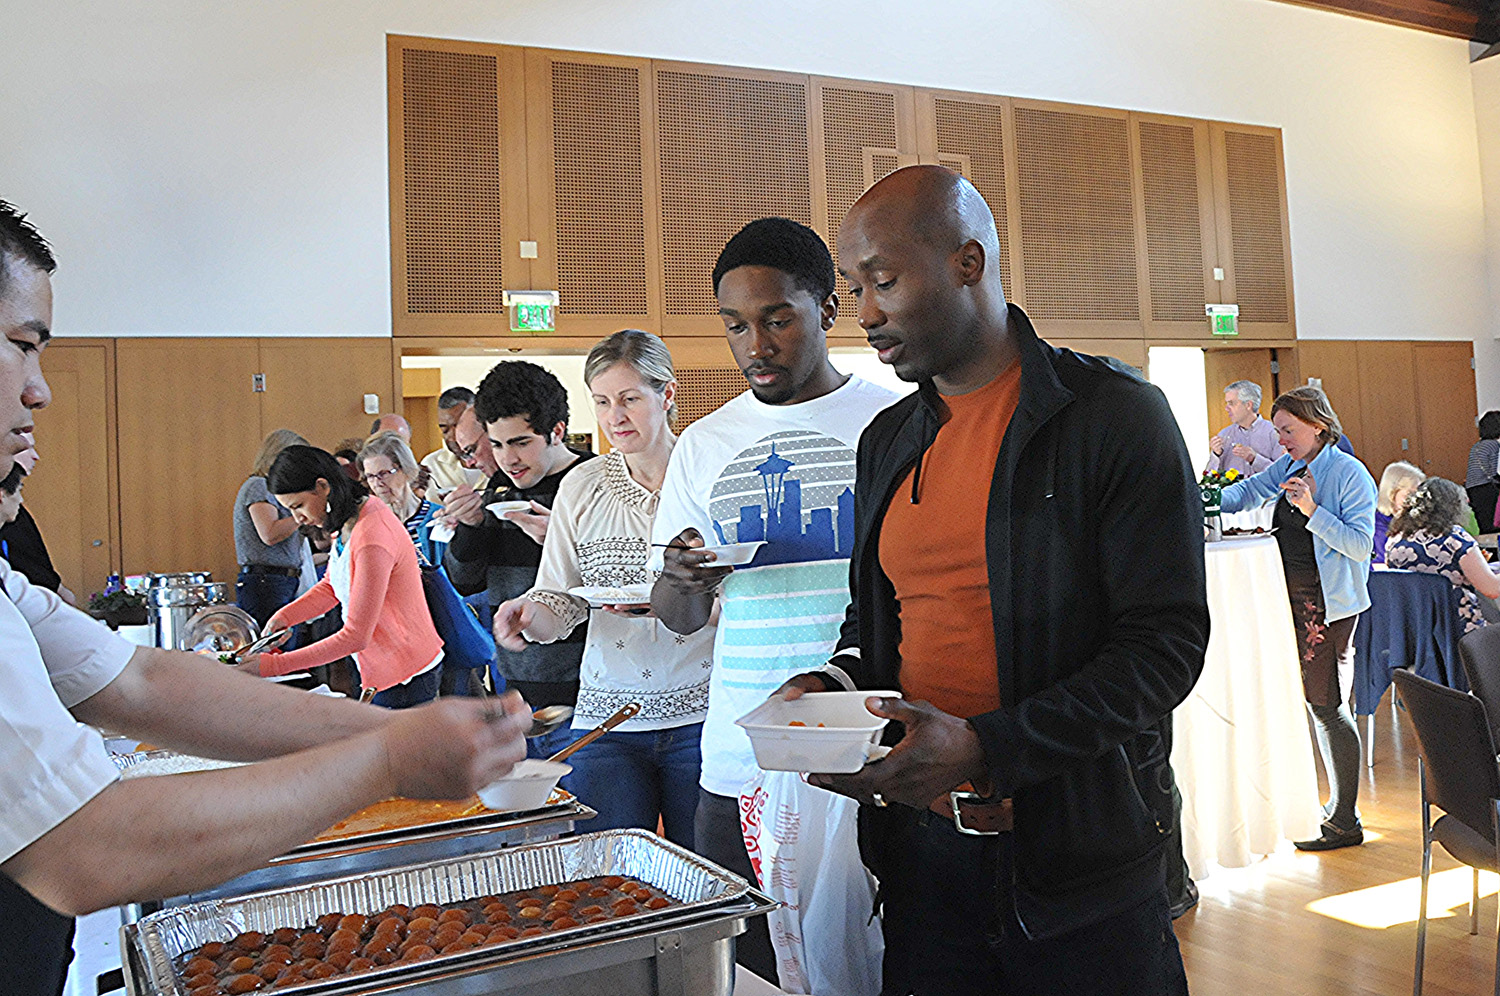 Attendees chose from offerings from 18 local restaurants, hotels, and bakeries.